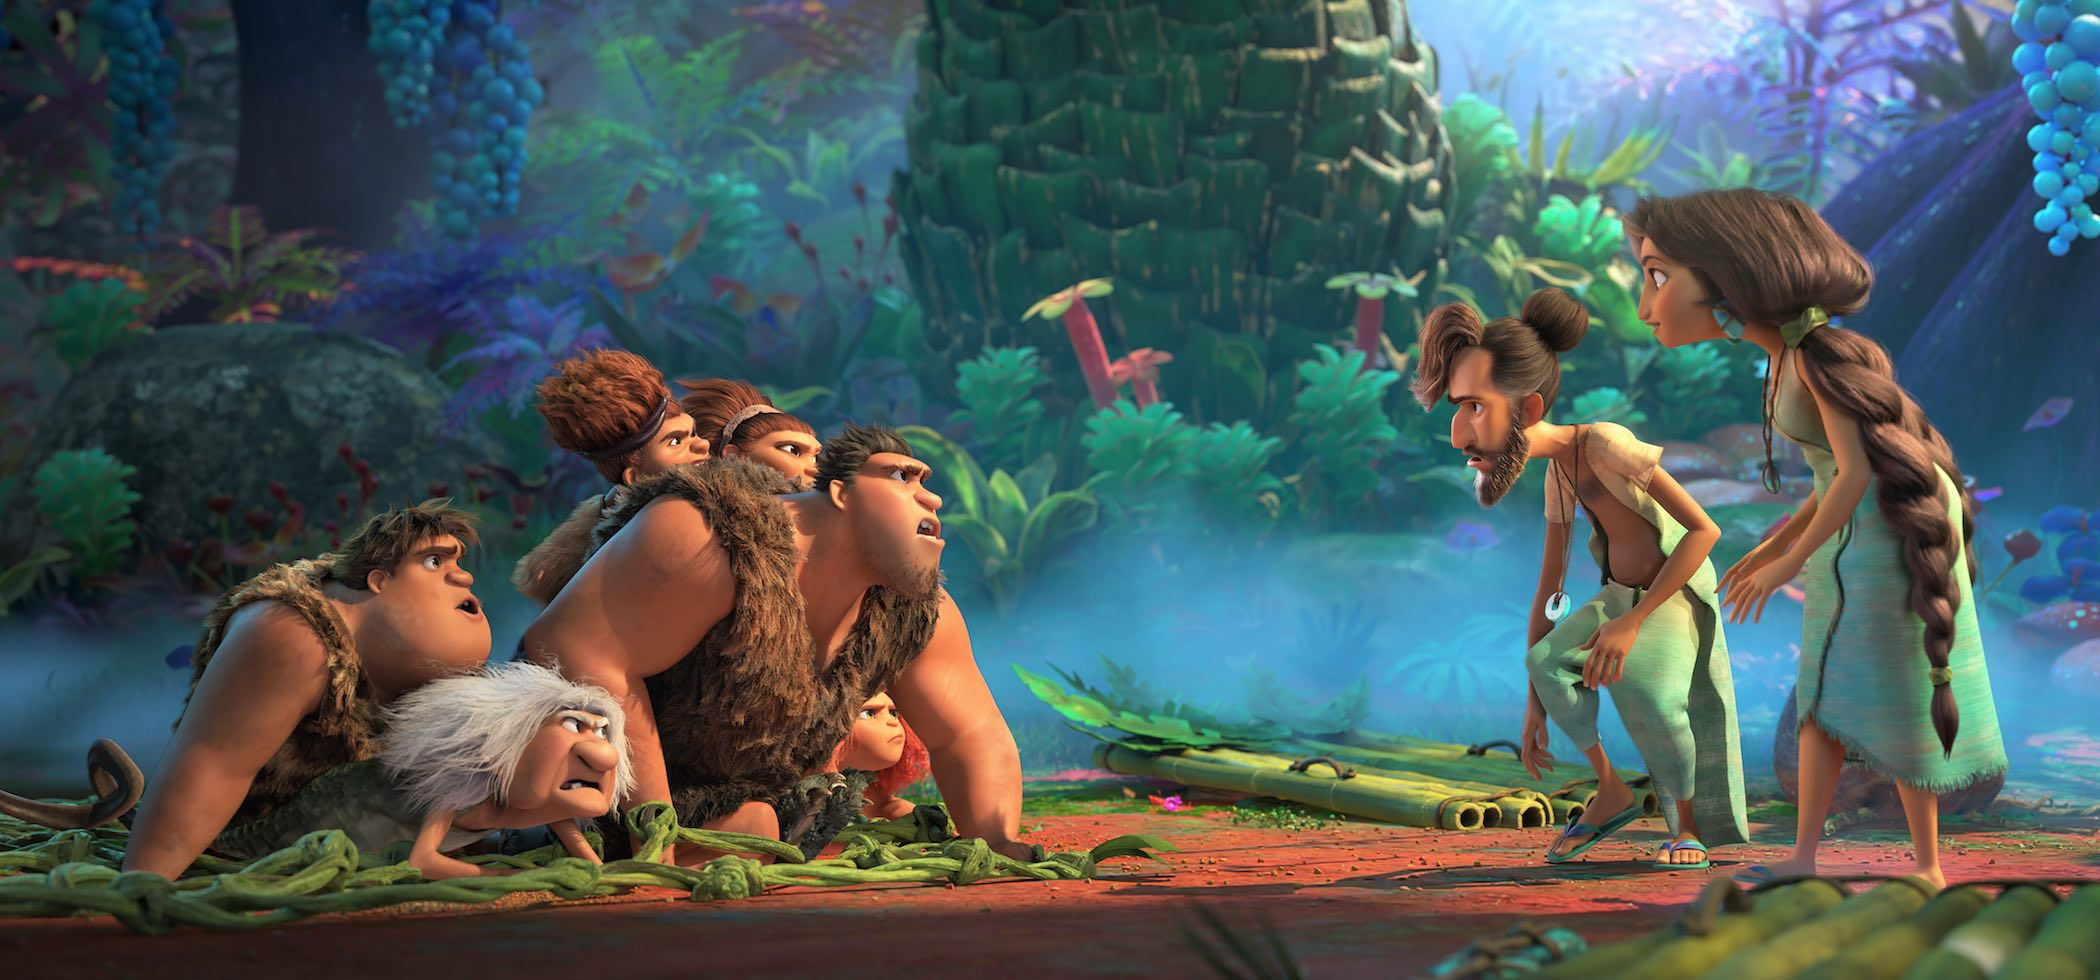 The Croods New Age movie review